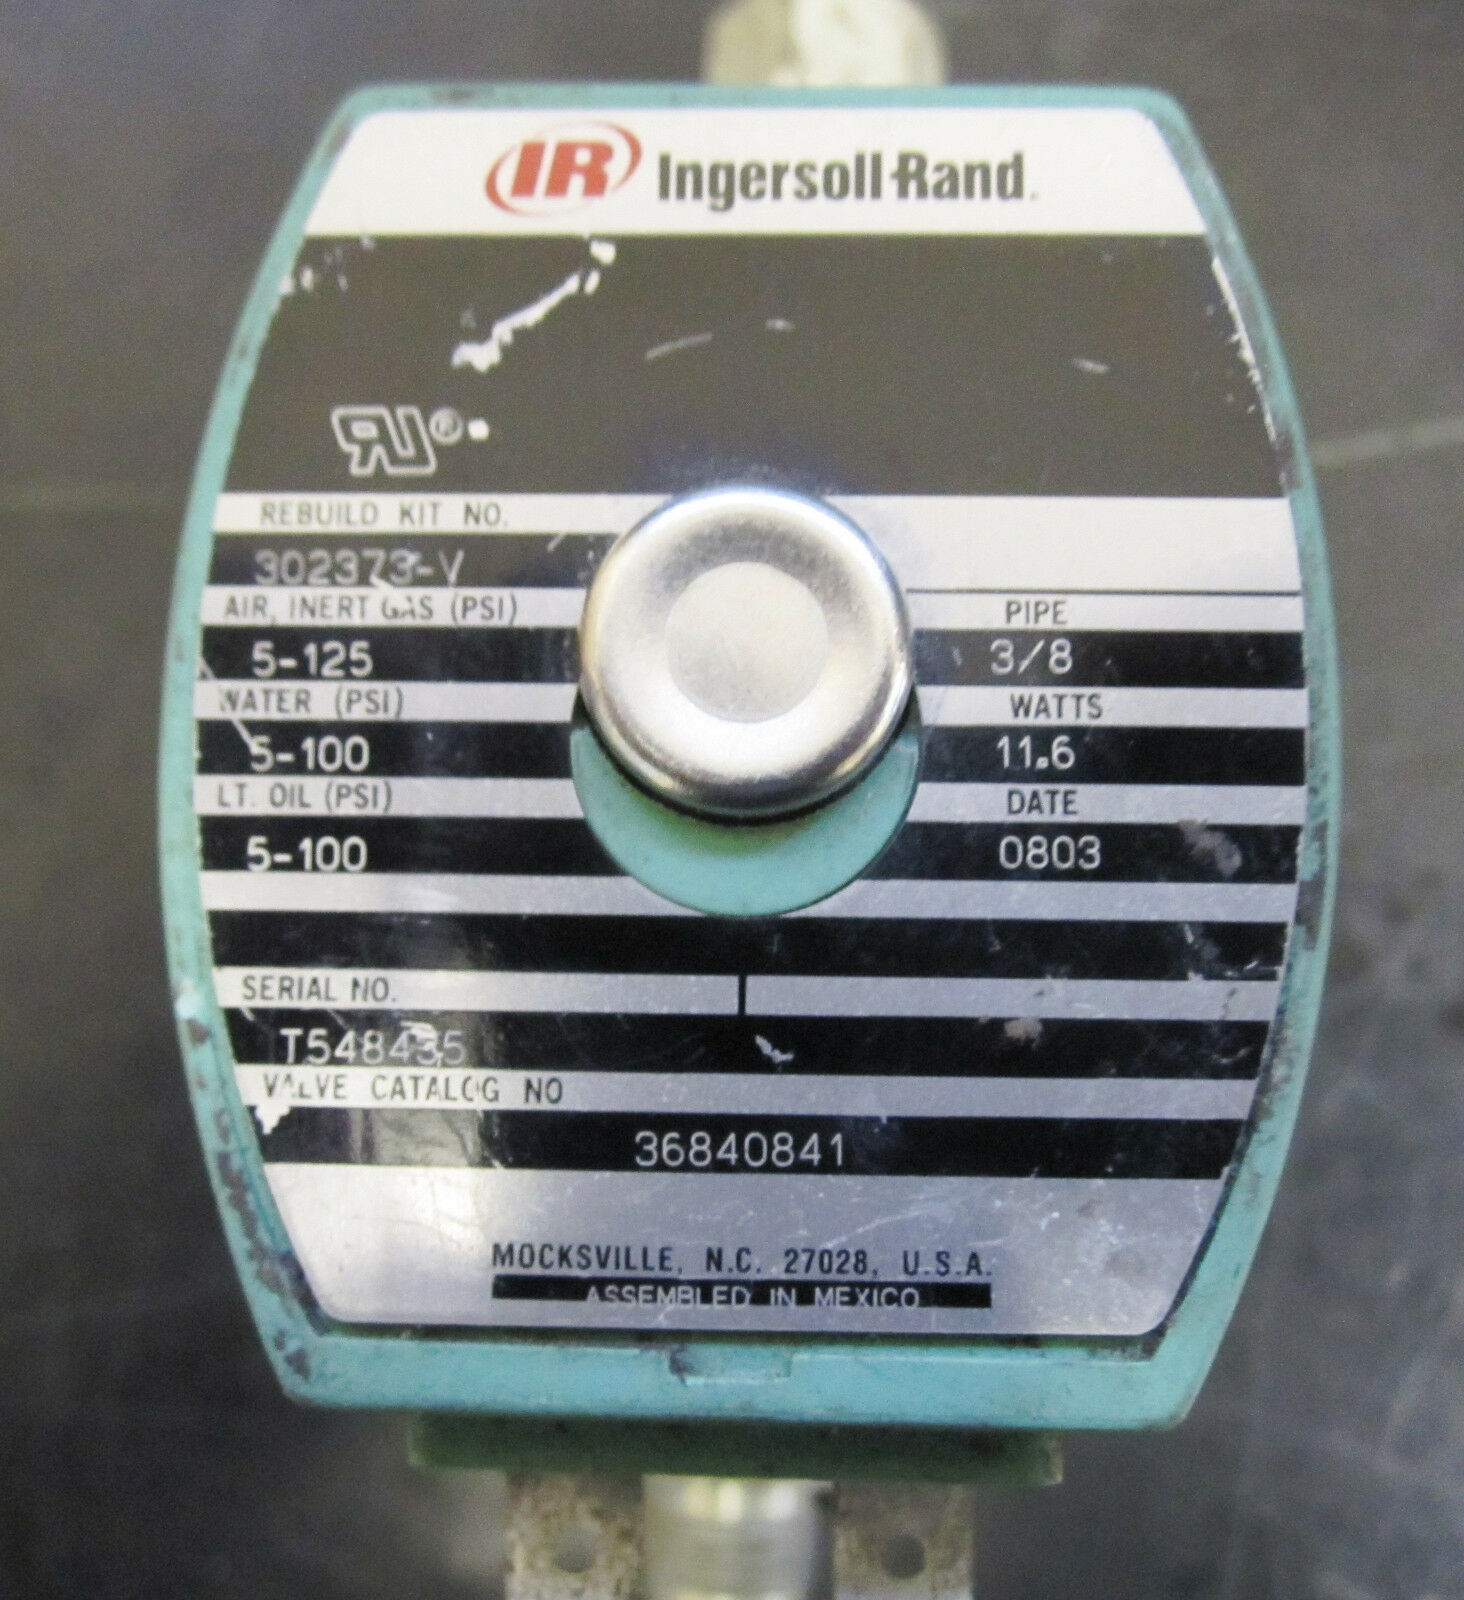 Ingersoll Rand Start Run Valve Solenoid Part No 36840841 4995 4 Of See More